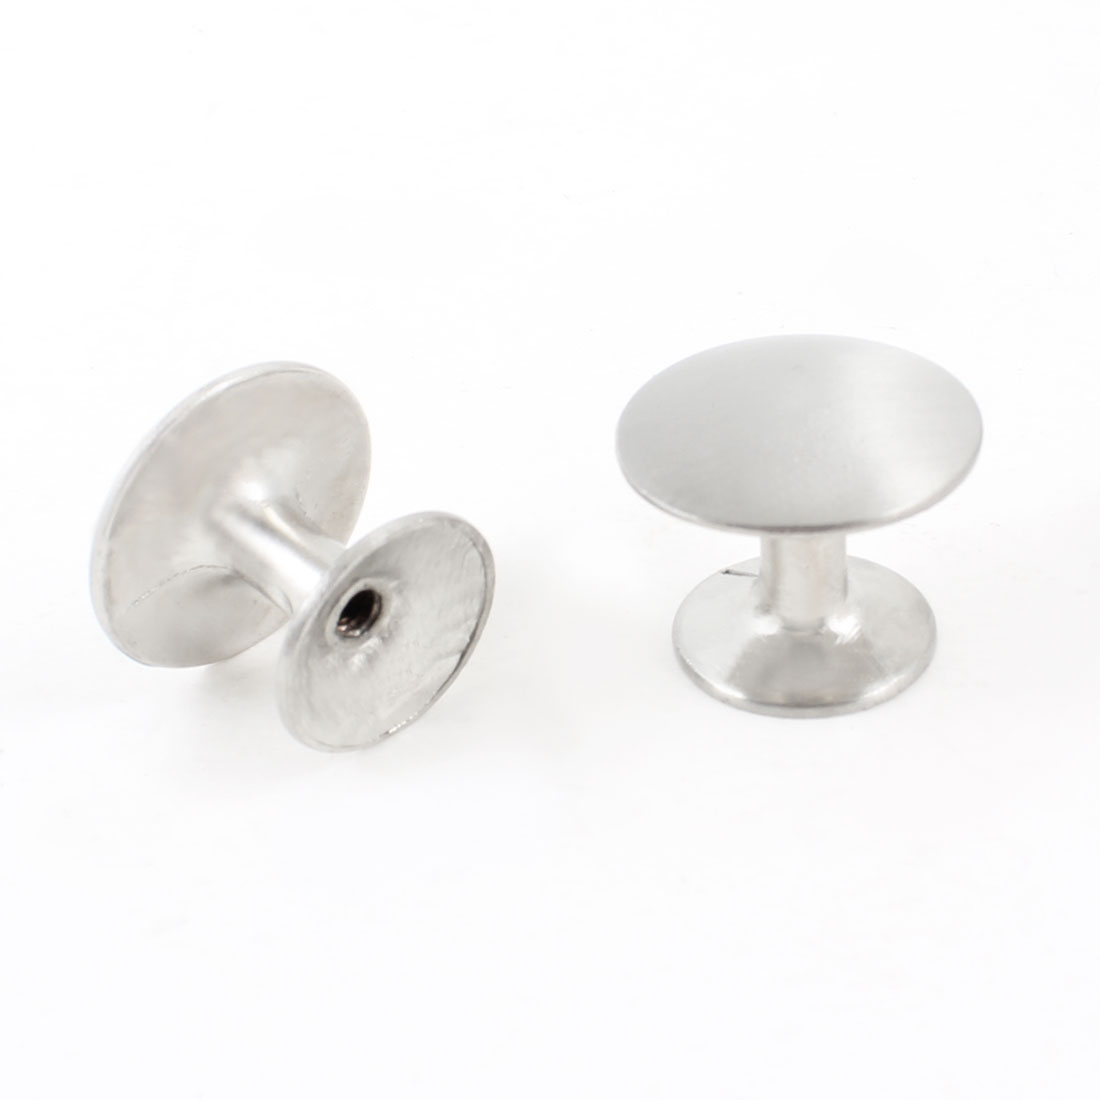 2pcs Silver Tone 24mm Dia Round Metal Door Knob Pull for Cupboard Closet